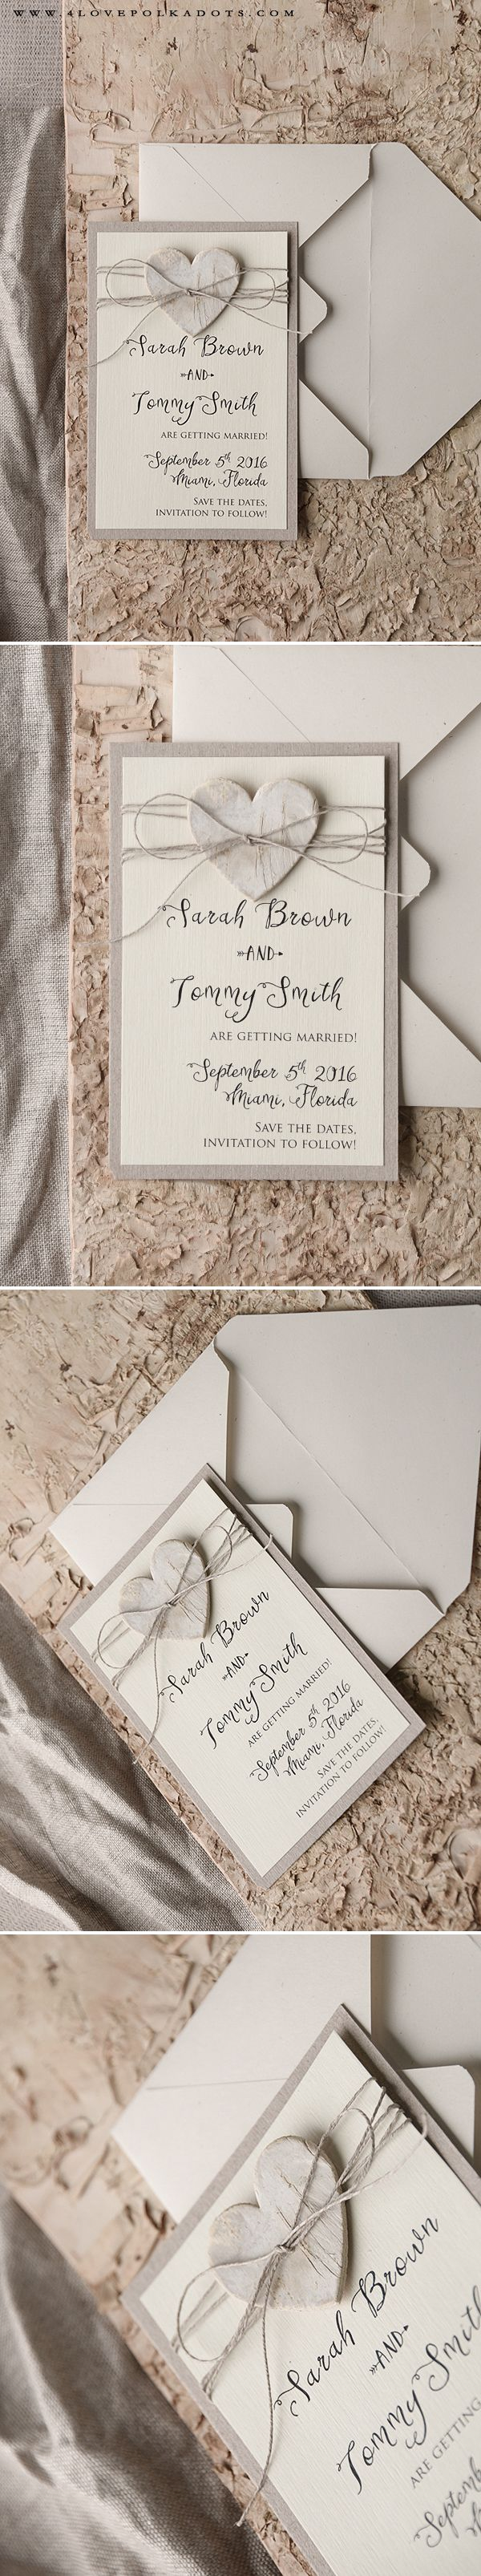 Save the Date Card with Birch Bark Heart on Twine #weddingideas #boho #rustic